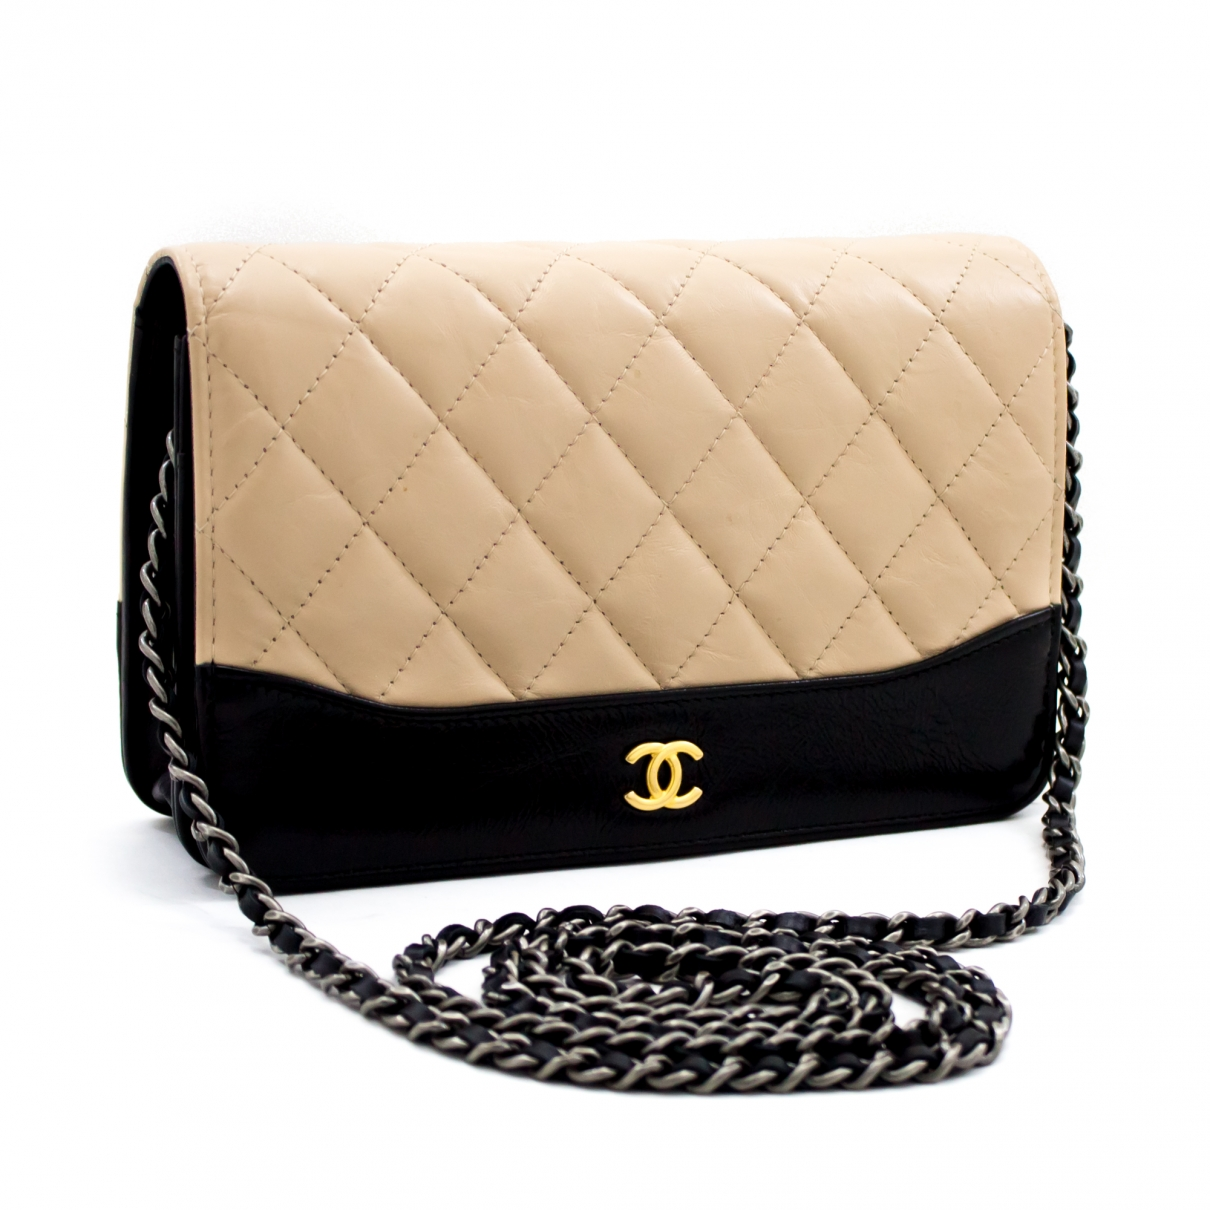 Chanel Wallet on Chain Beige Leather handbag for Women \N